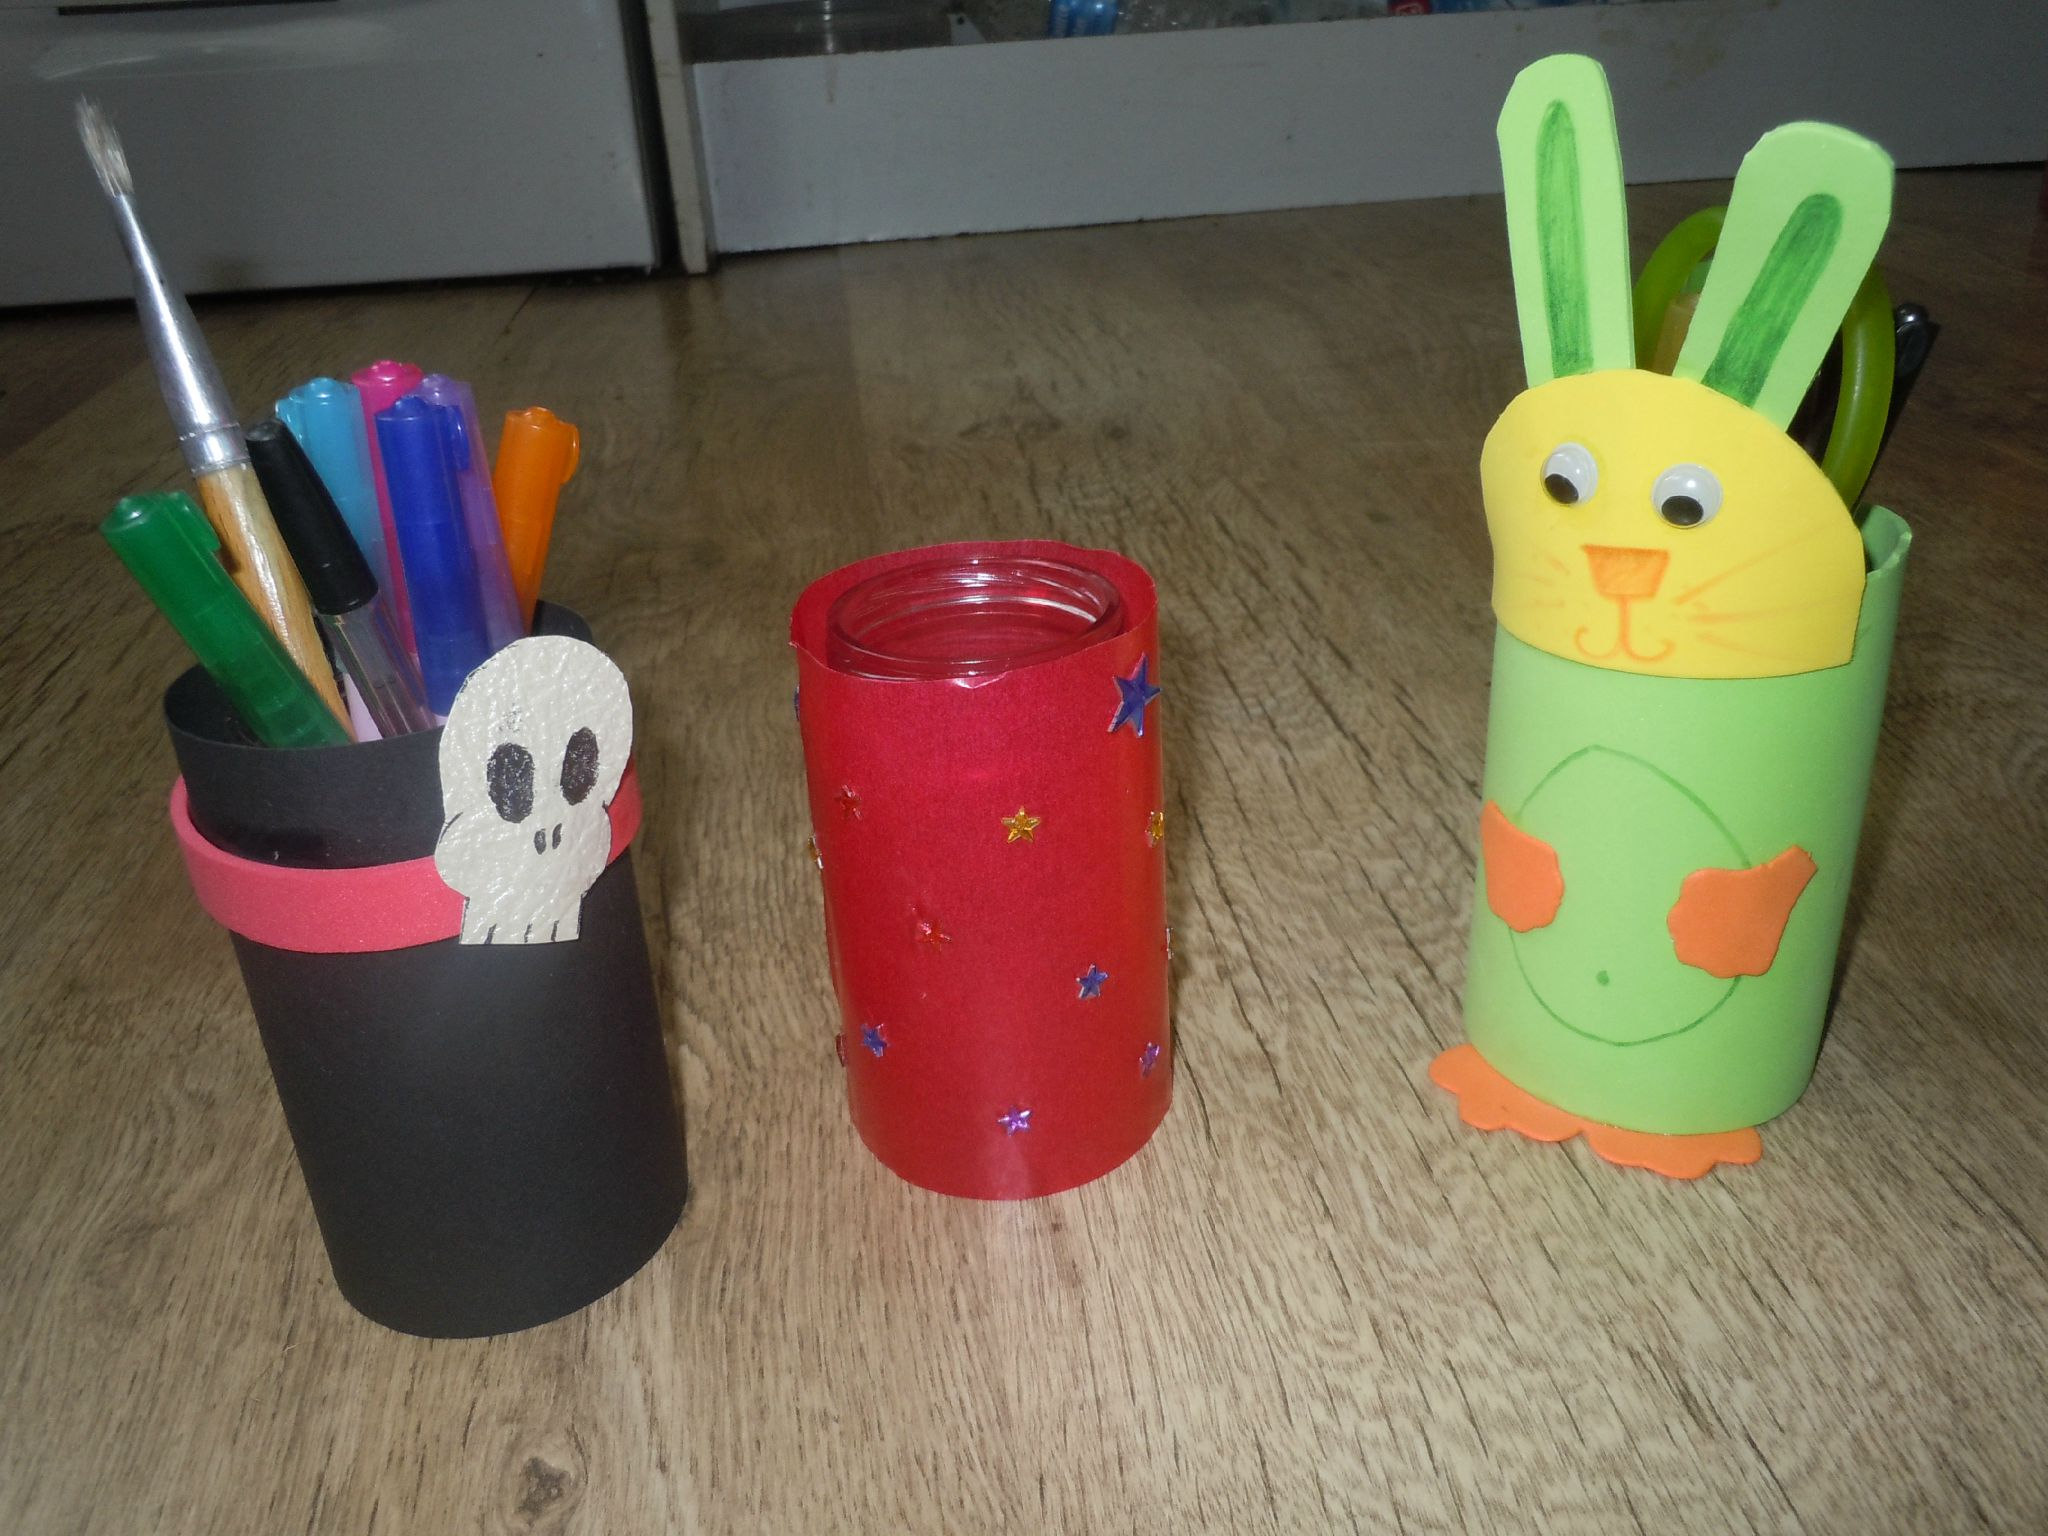 Pot a crayon ou photophore Home Made - tuto - atelier pour enfant